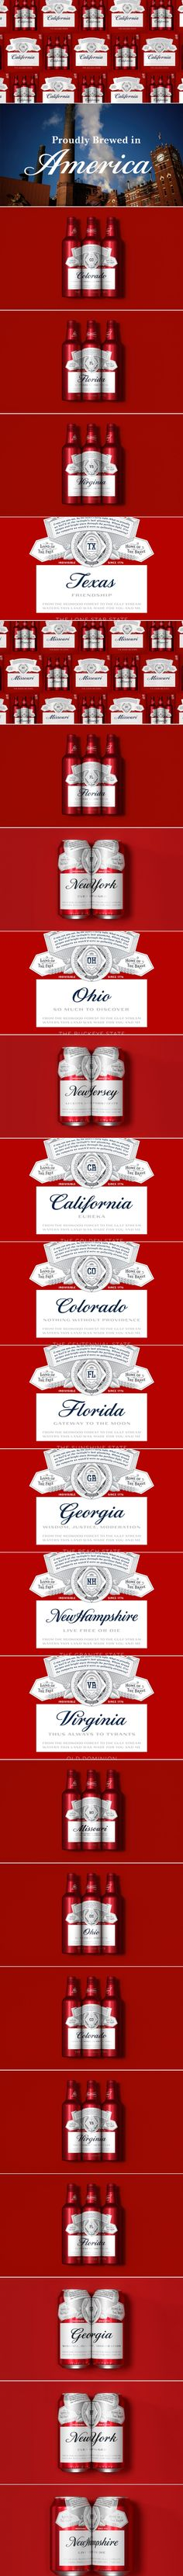 11 Budweiser Summer State Cans from NY to CA — The Dieline | Packaging & Branding Design & Innovation News